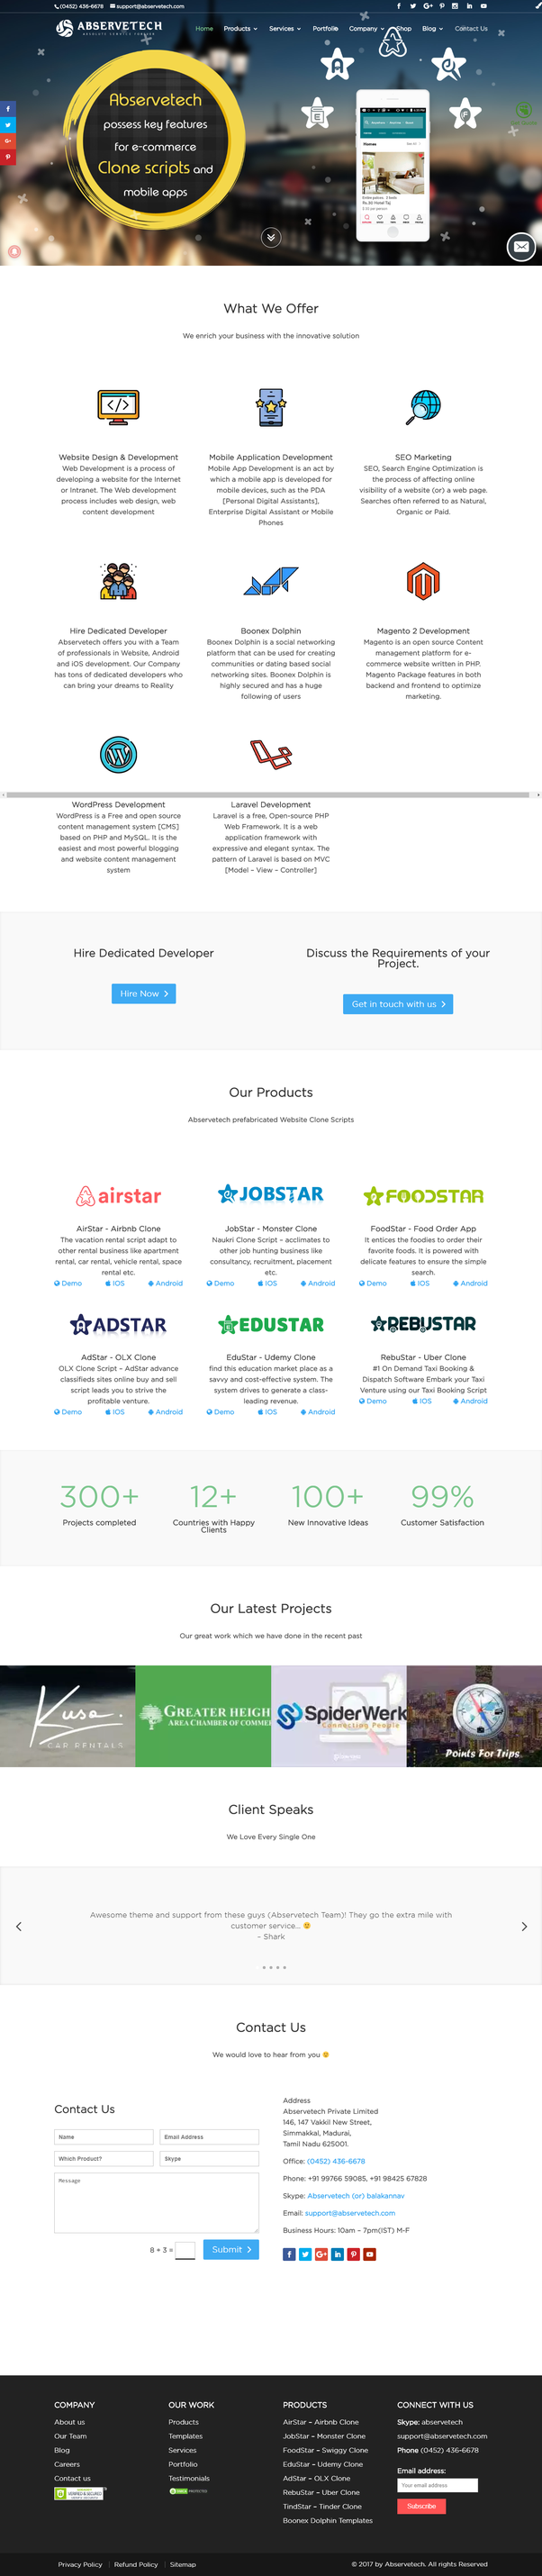 Which is the best marketplace to buy and sell a clone script? - Quora